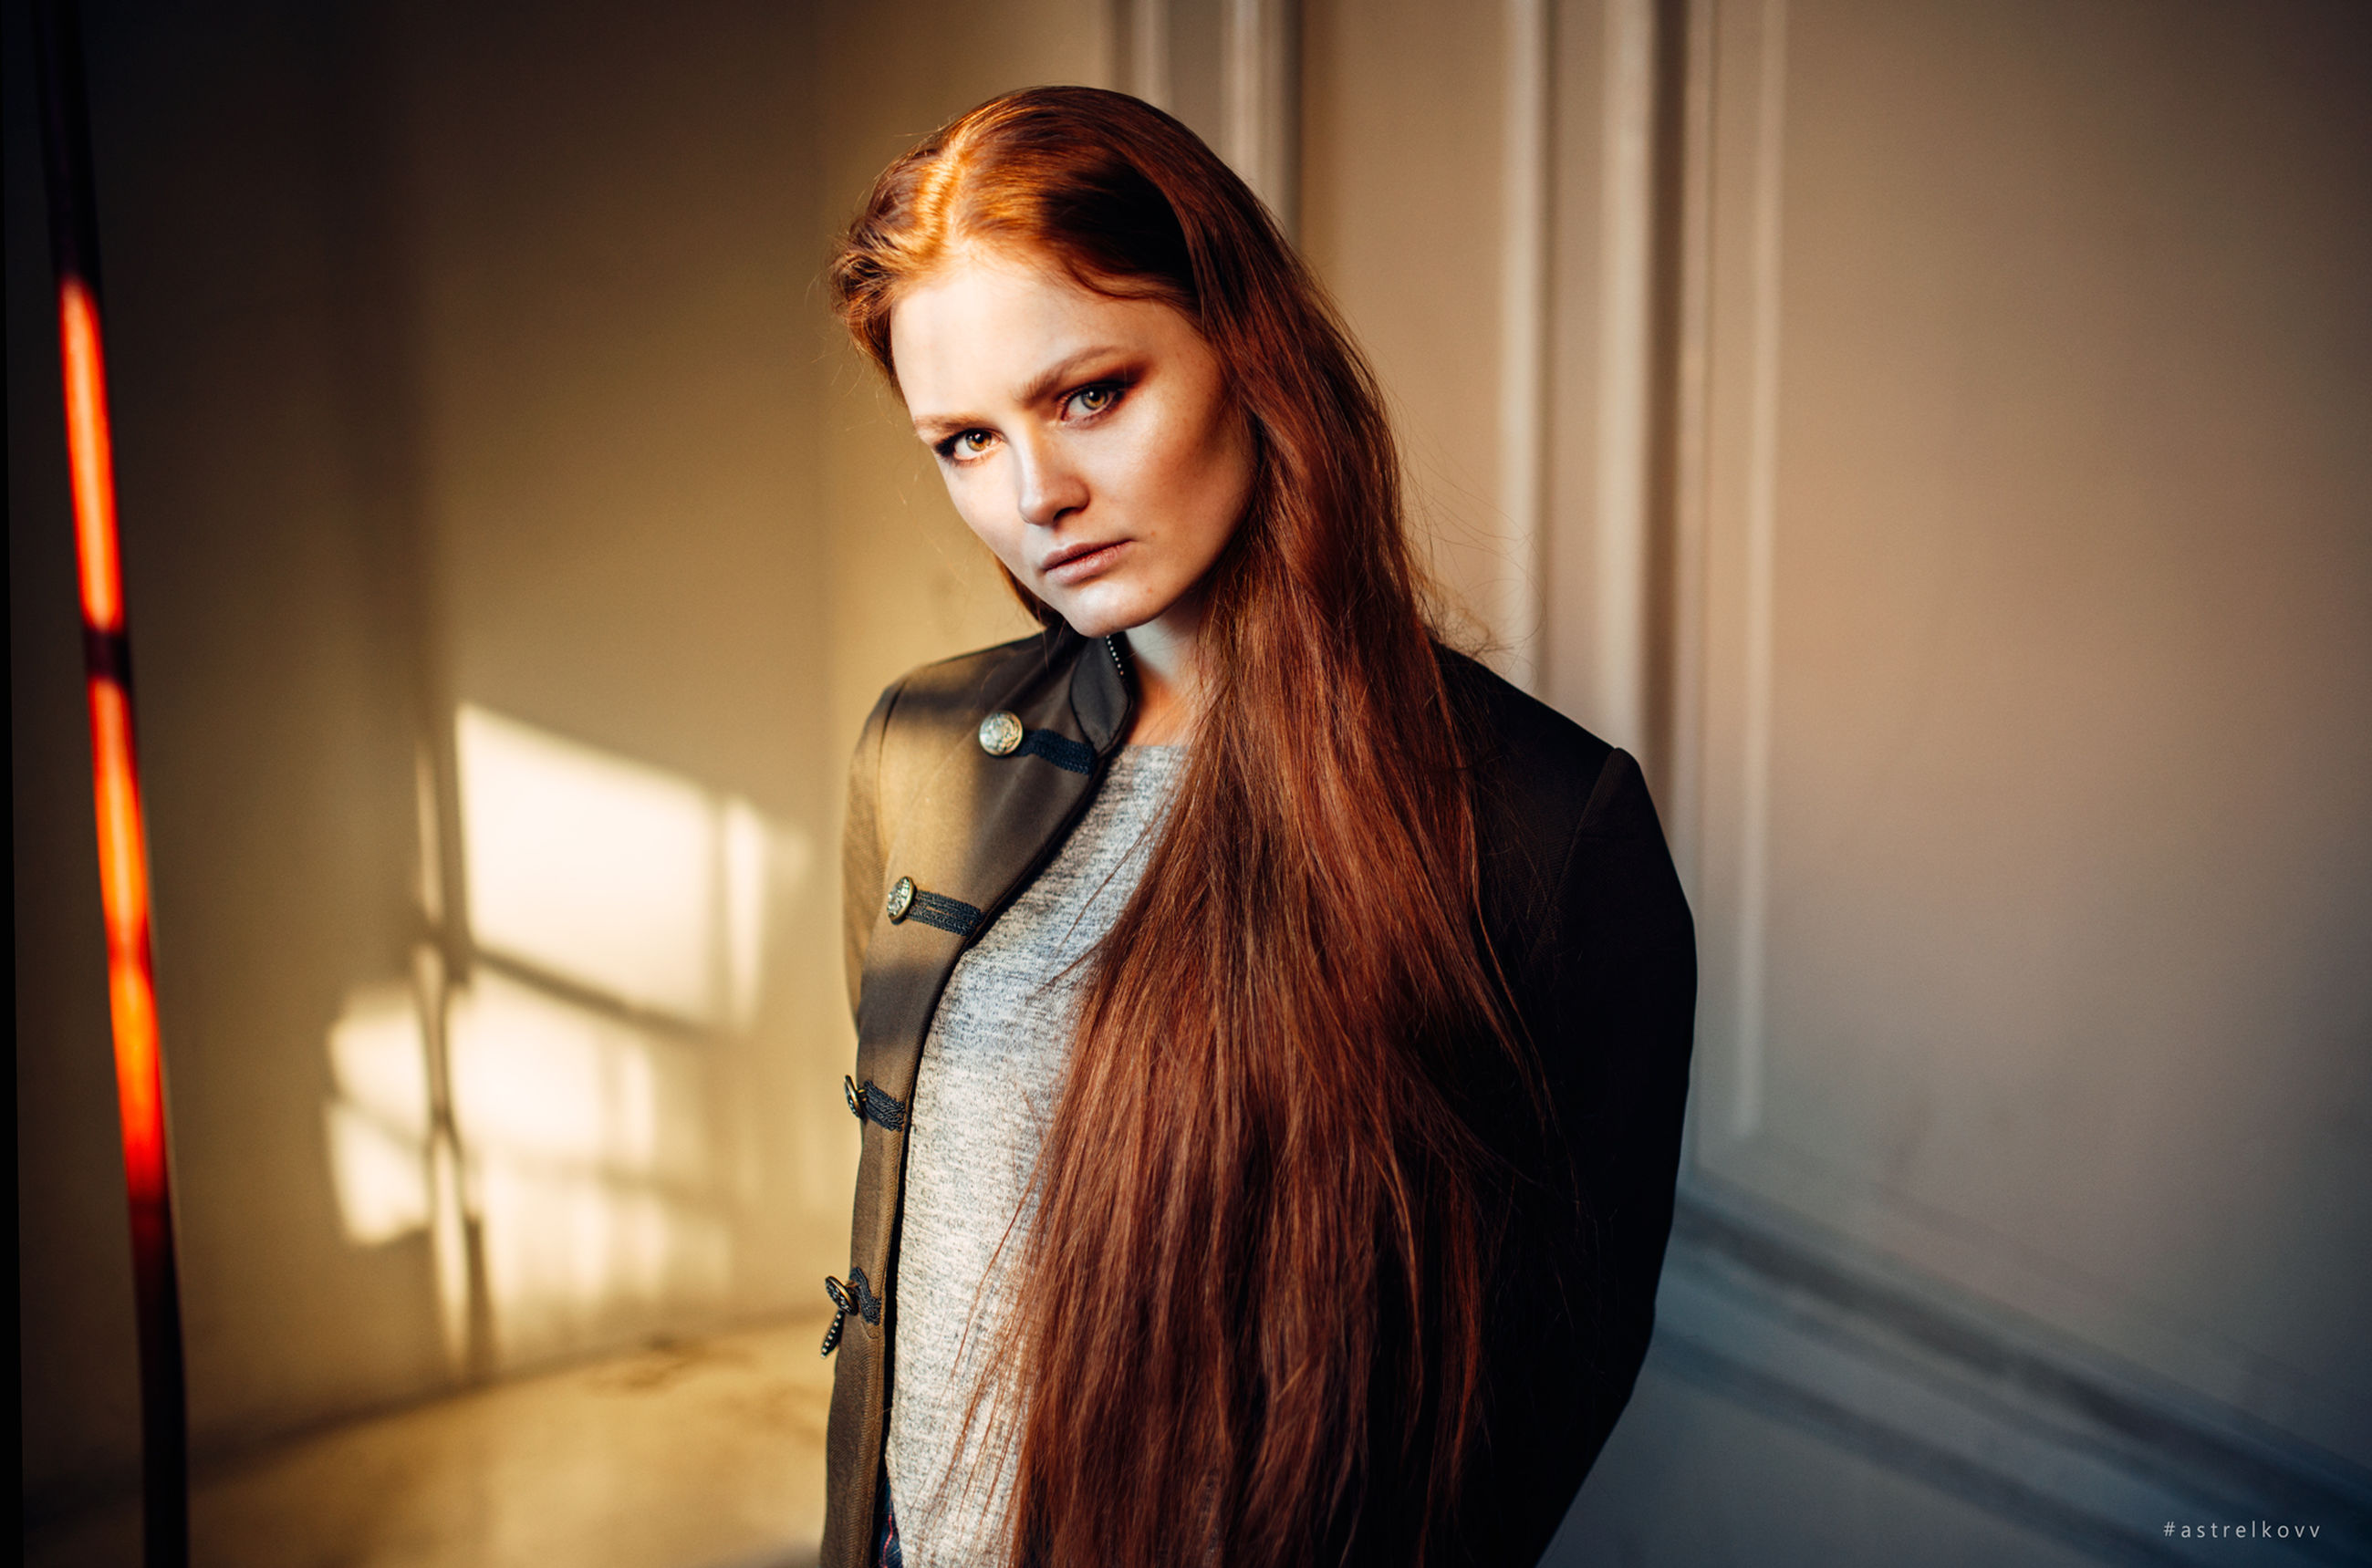 young adult, young women, real people, redhead, indoors, standing, one person, lifestyles, leisure activity, focus on foreground, beautiful woman, dyed hair, day